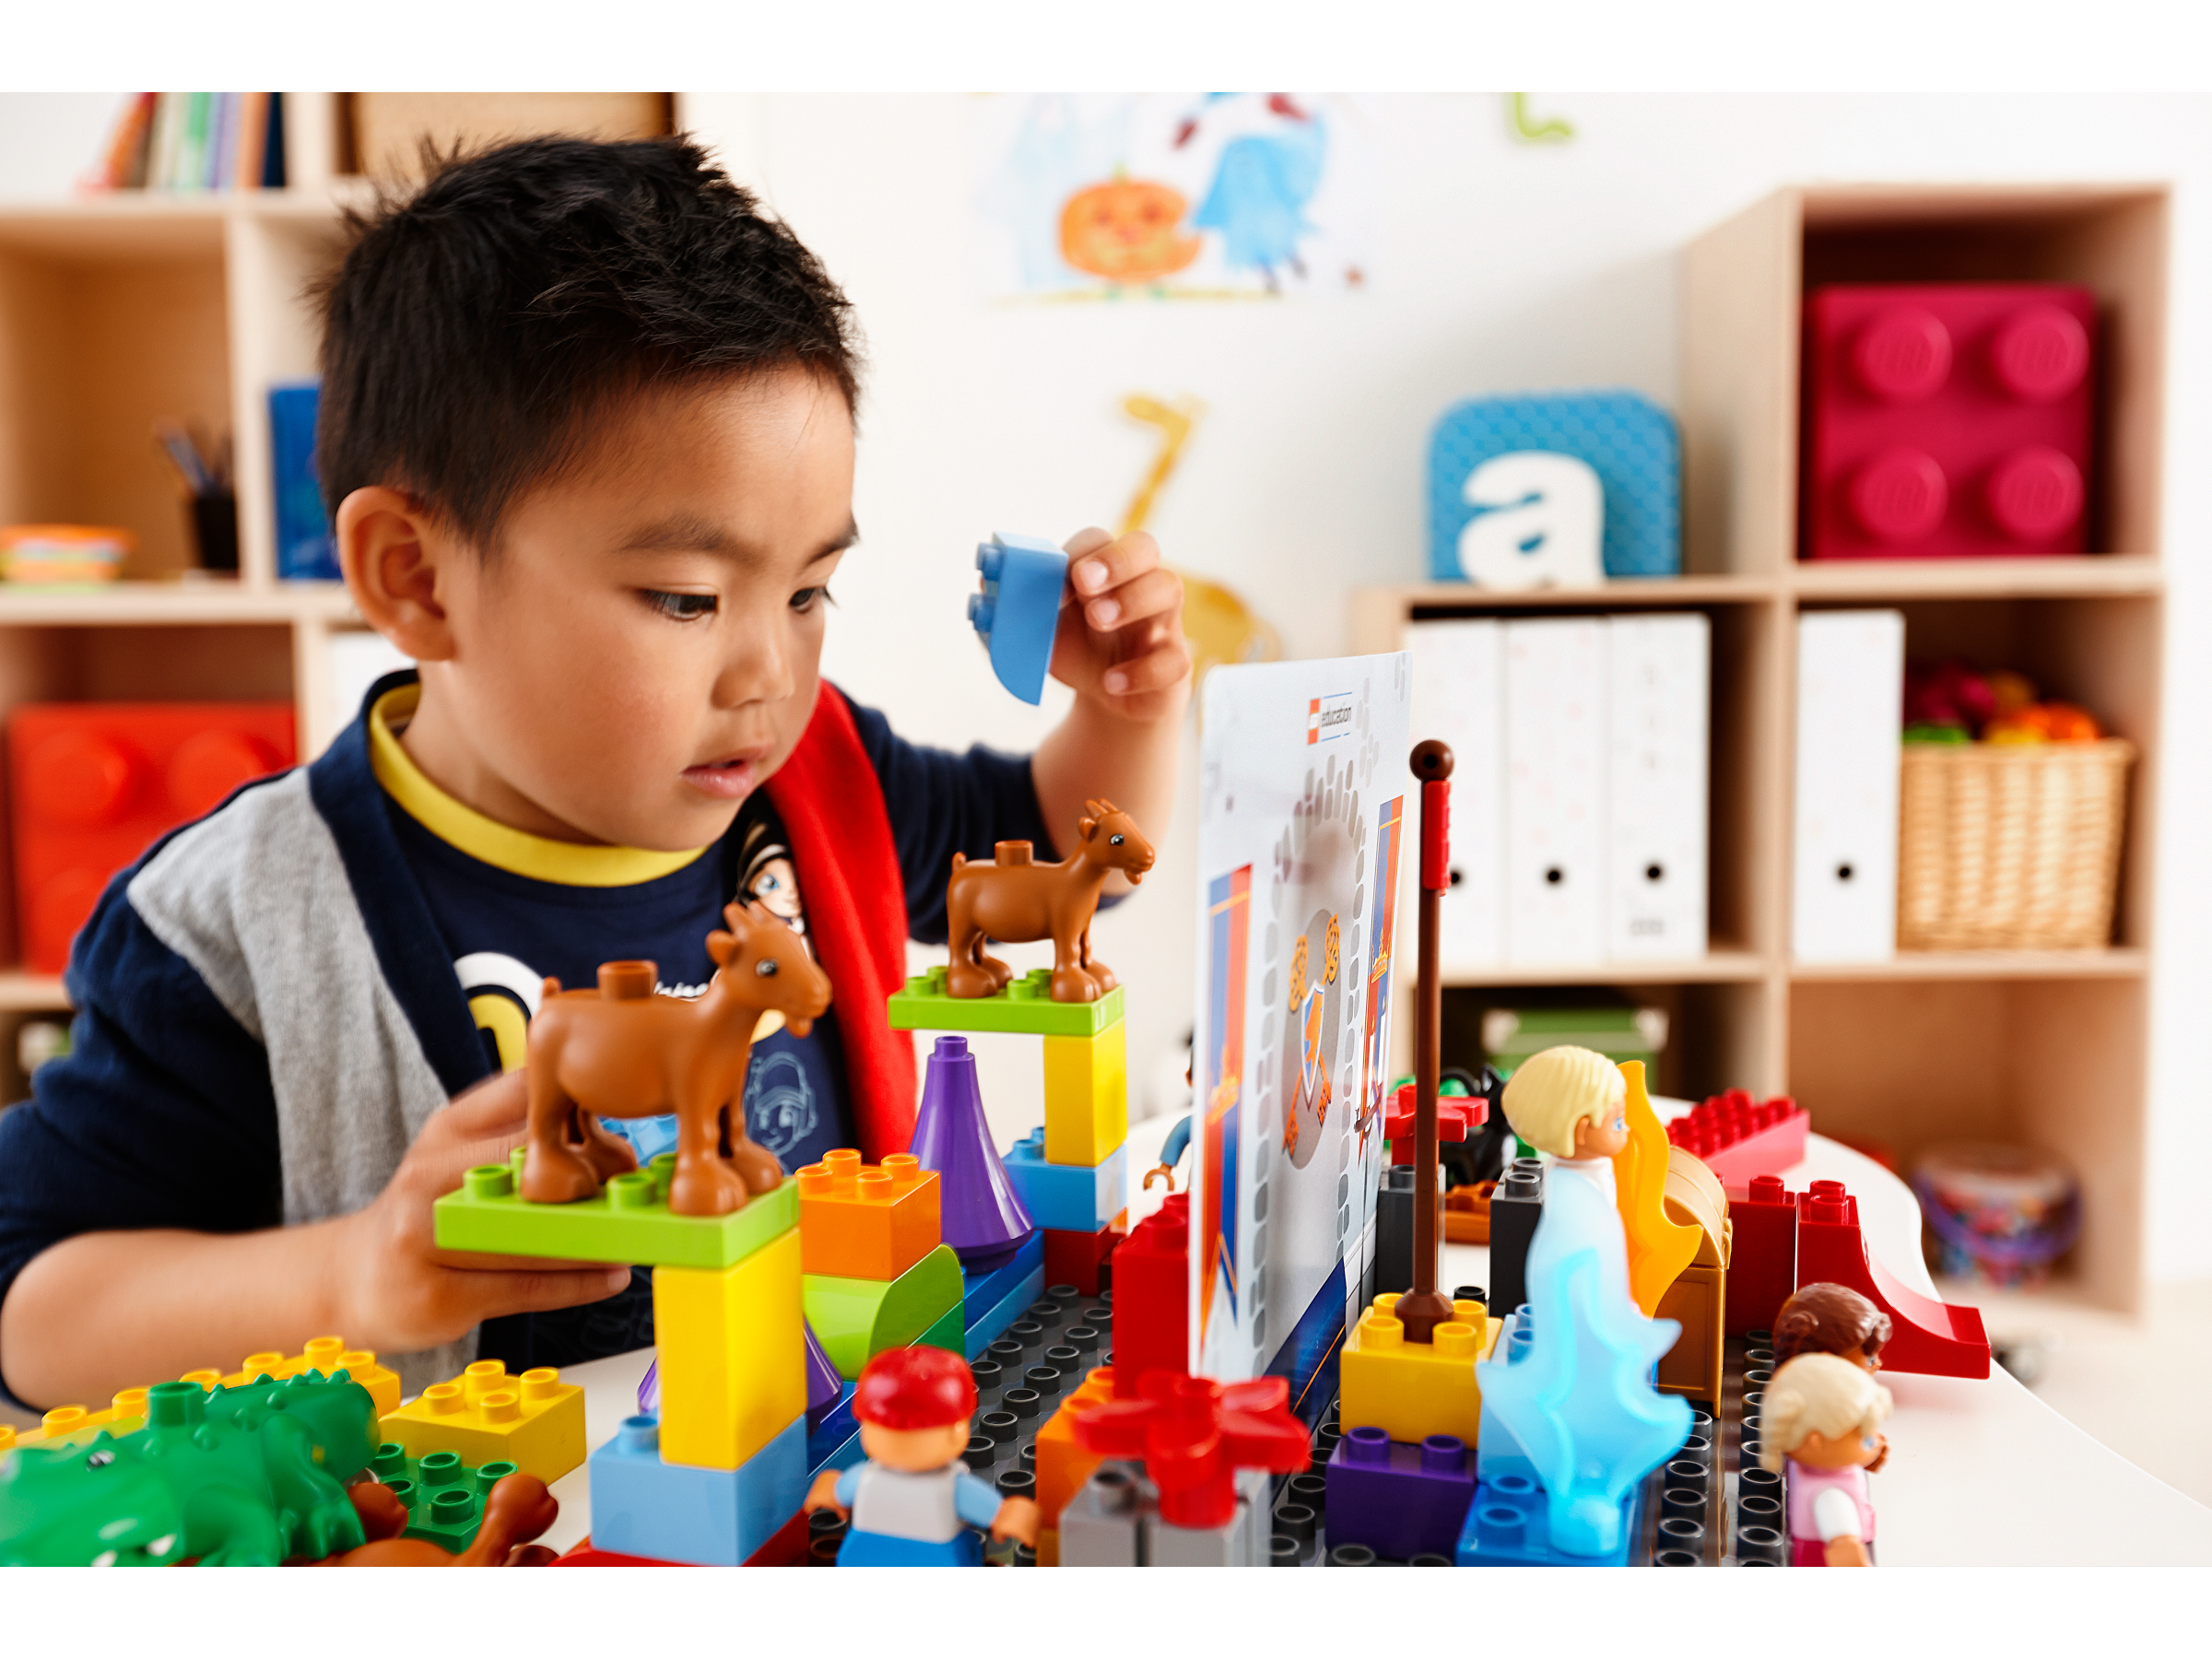 Preschool boy playing with StoryTales by LEGO Education, developing his storytelling skills.